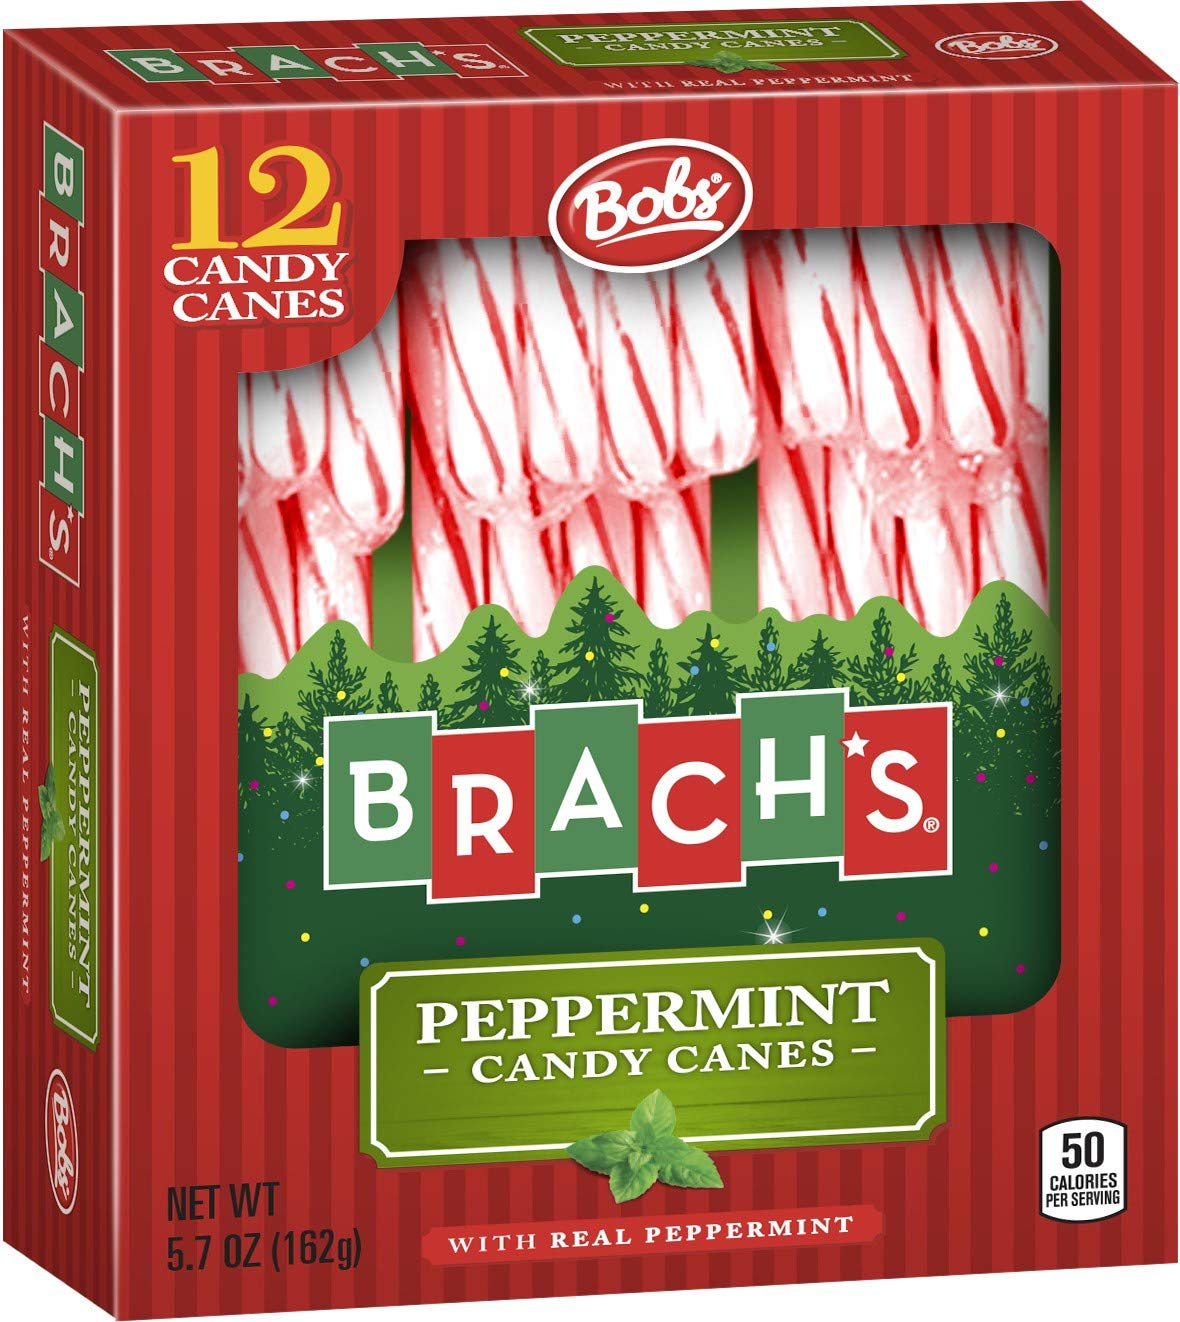 Brach's Red and White Peppermint Candy Canes, 12 ct